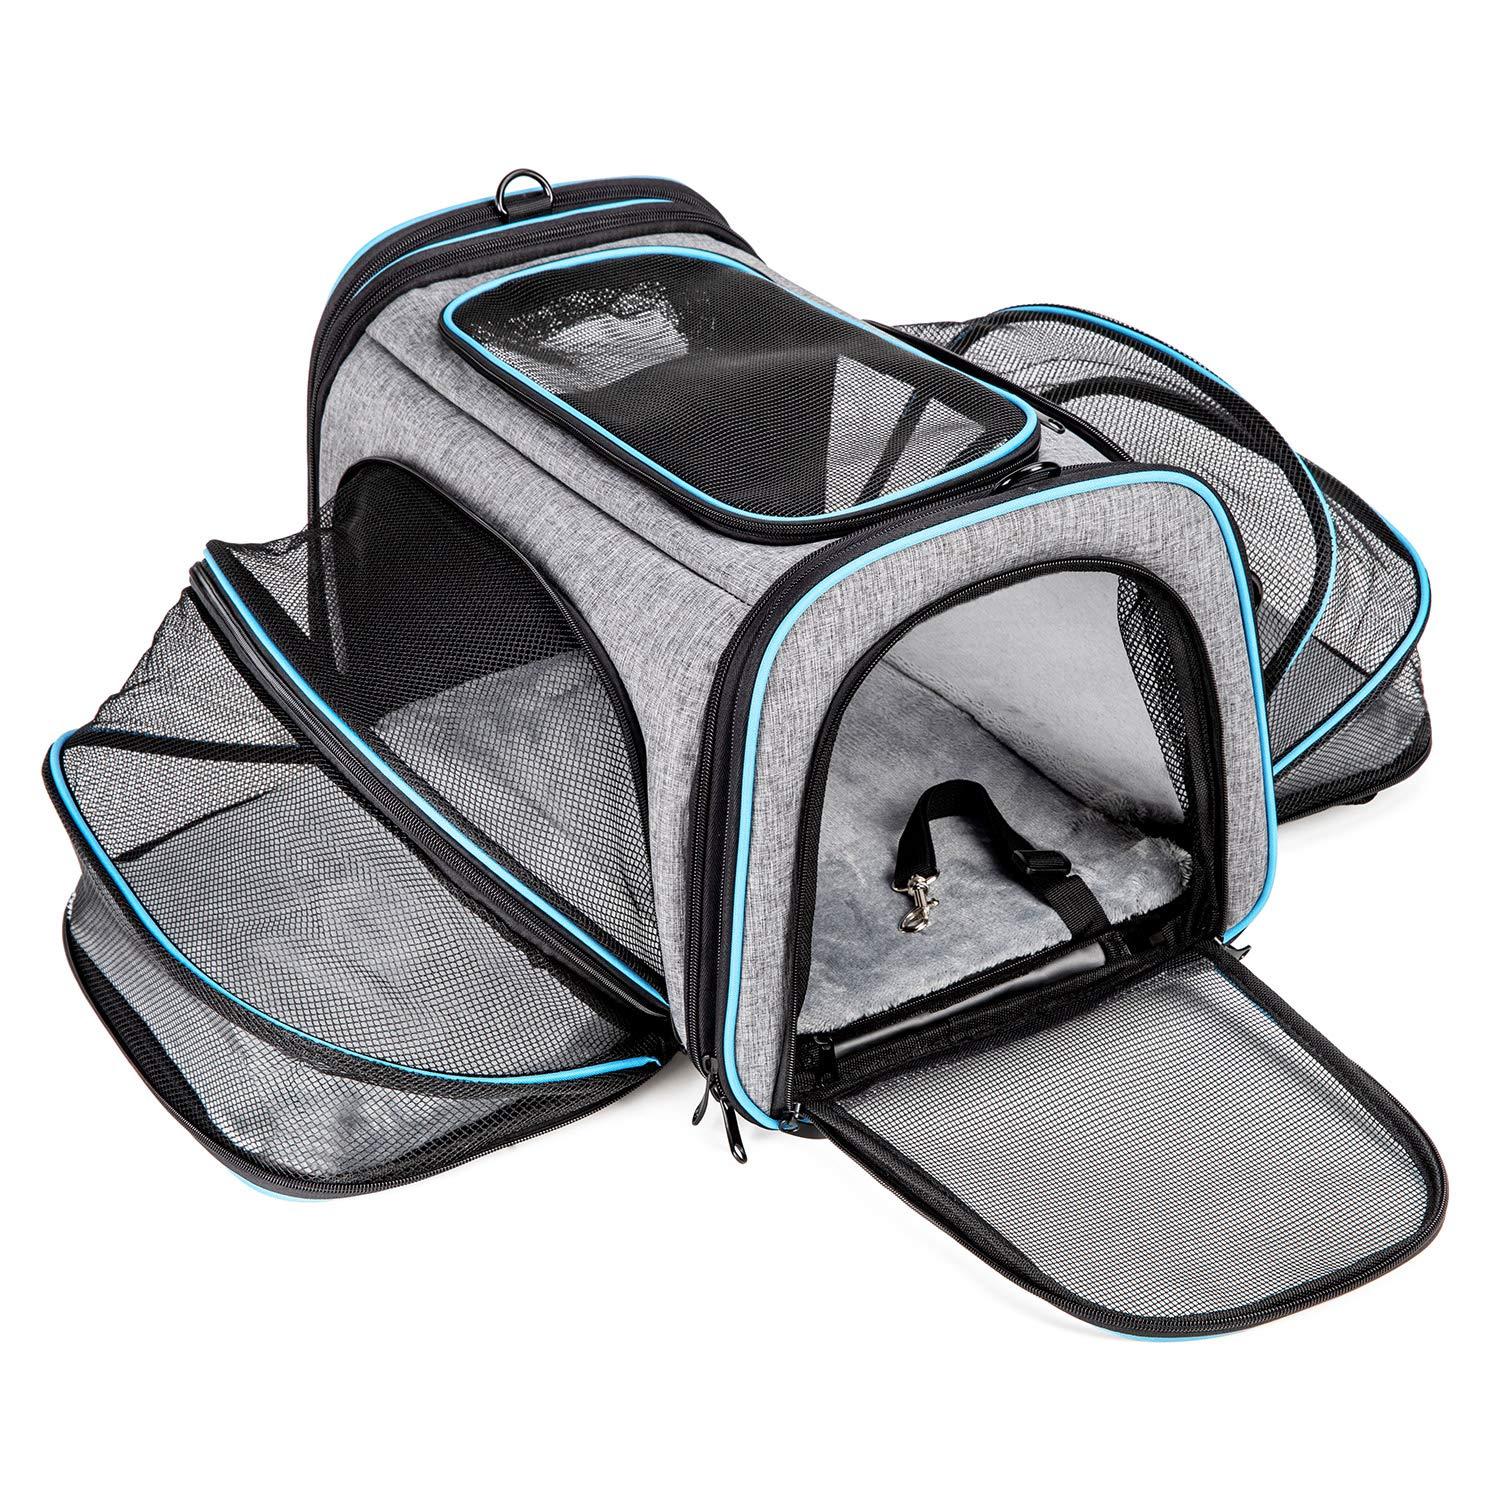 Cat Carrier Airline Approved Pet Carrier,Bertasche Expandable Soft Sided Dog Travel Carrier Bag with Removable Fleece Pad and Pockets by Bertasche